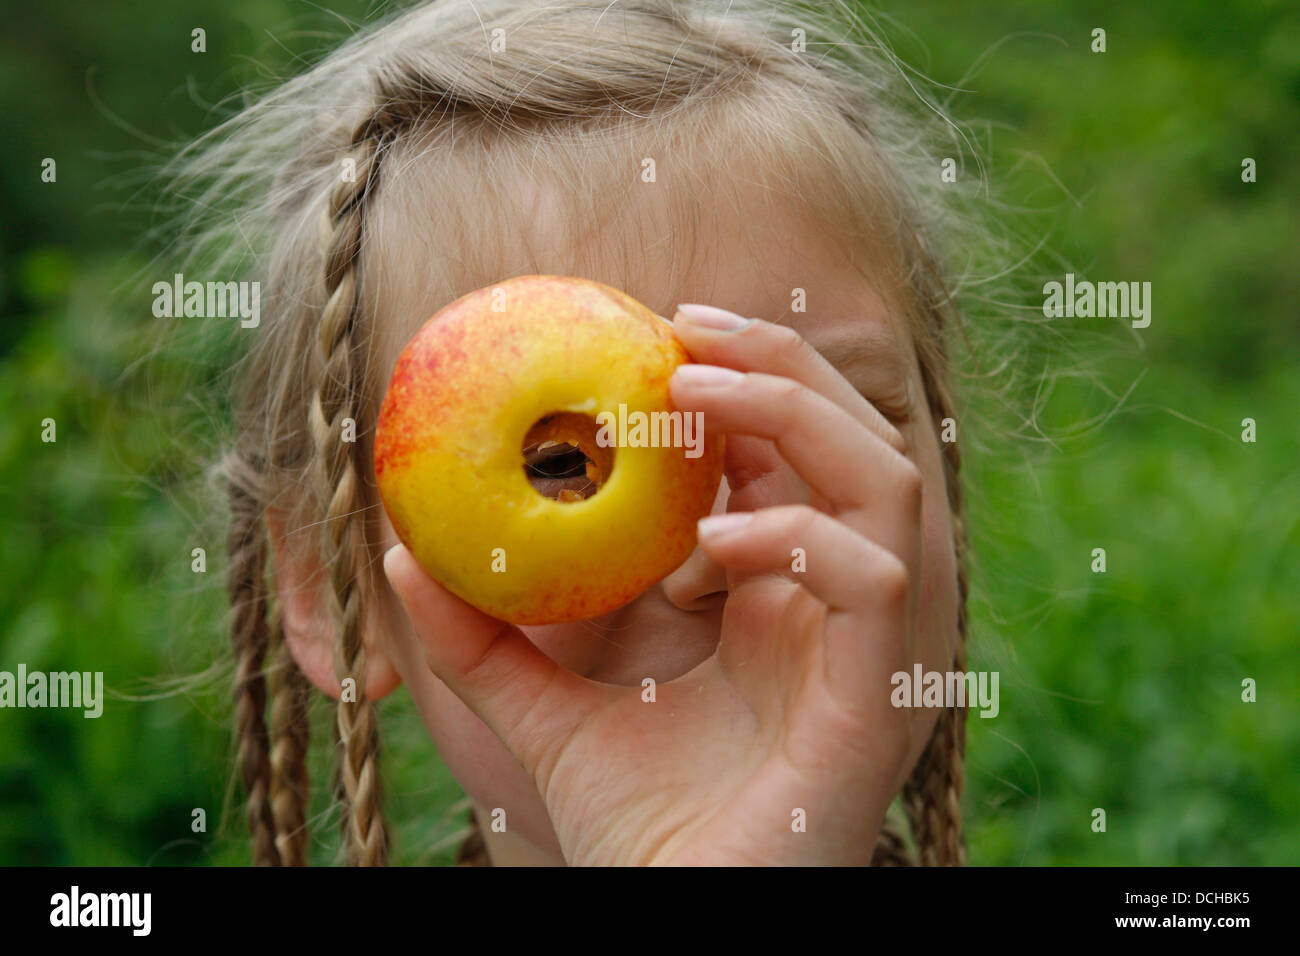 Girl, child with apple, apples, Mädchen, Kind mit Apfel, Äpfel, Obst - Stock Image